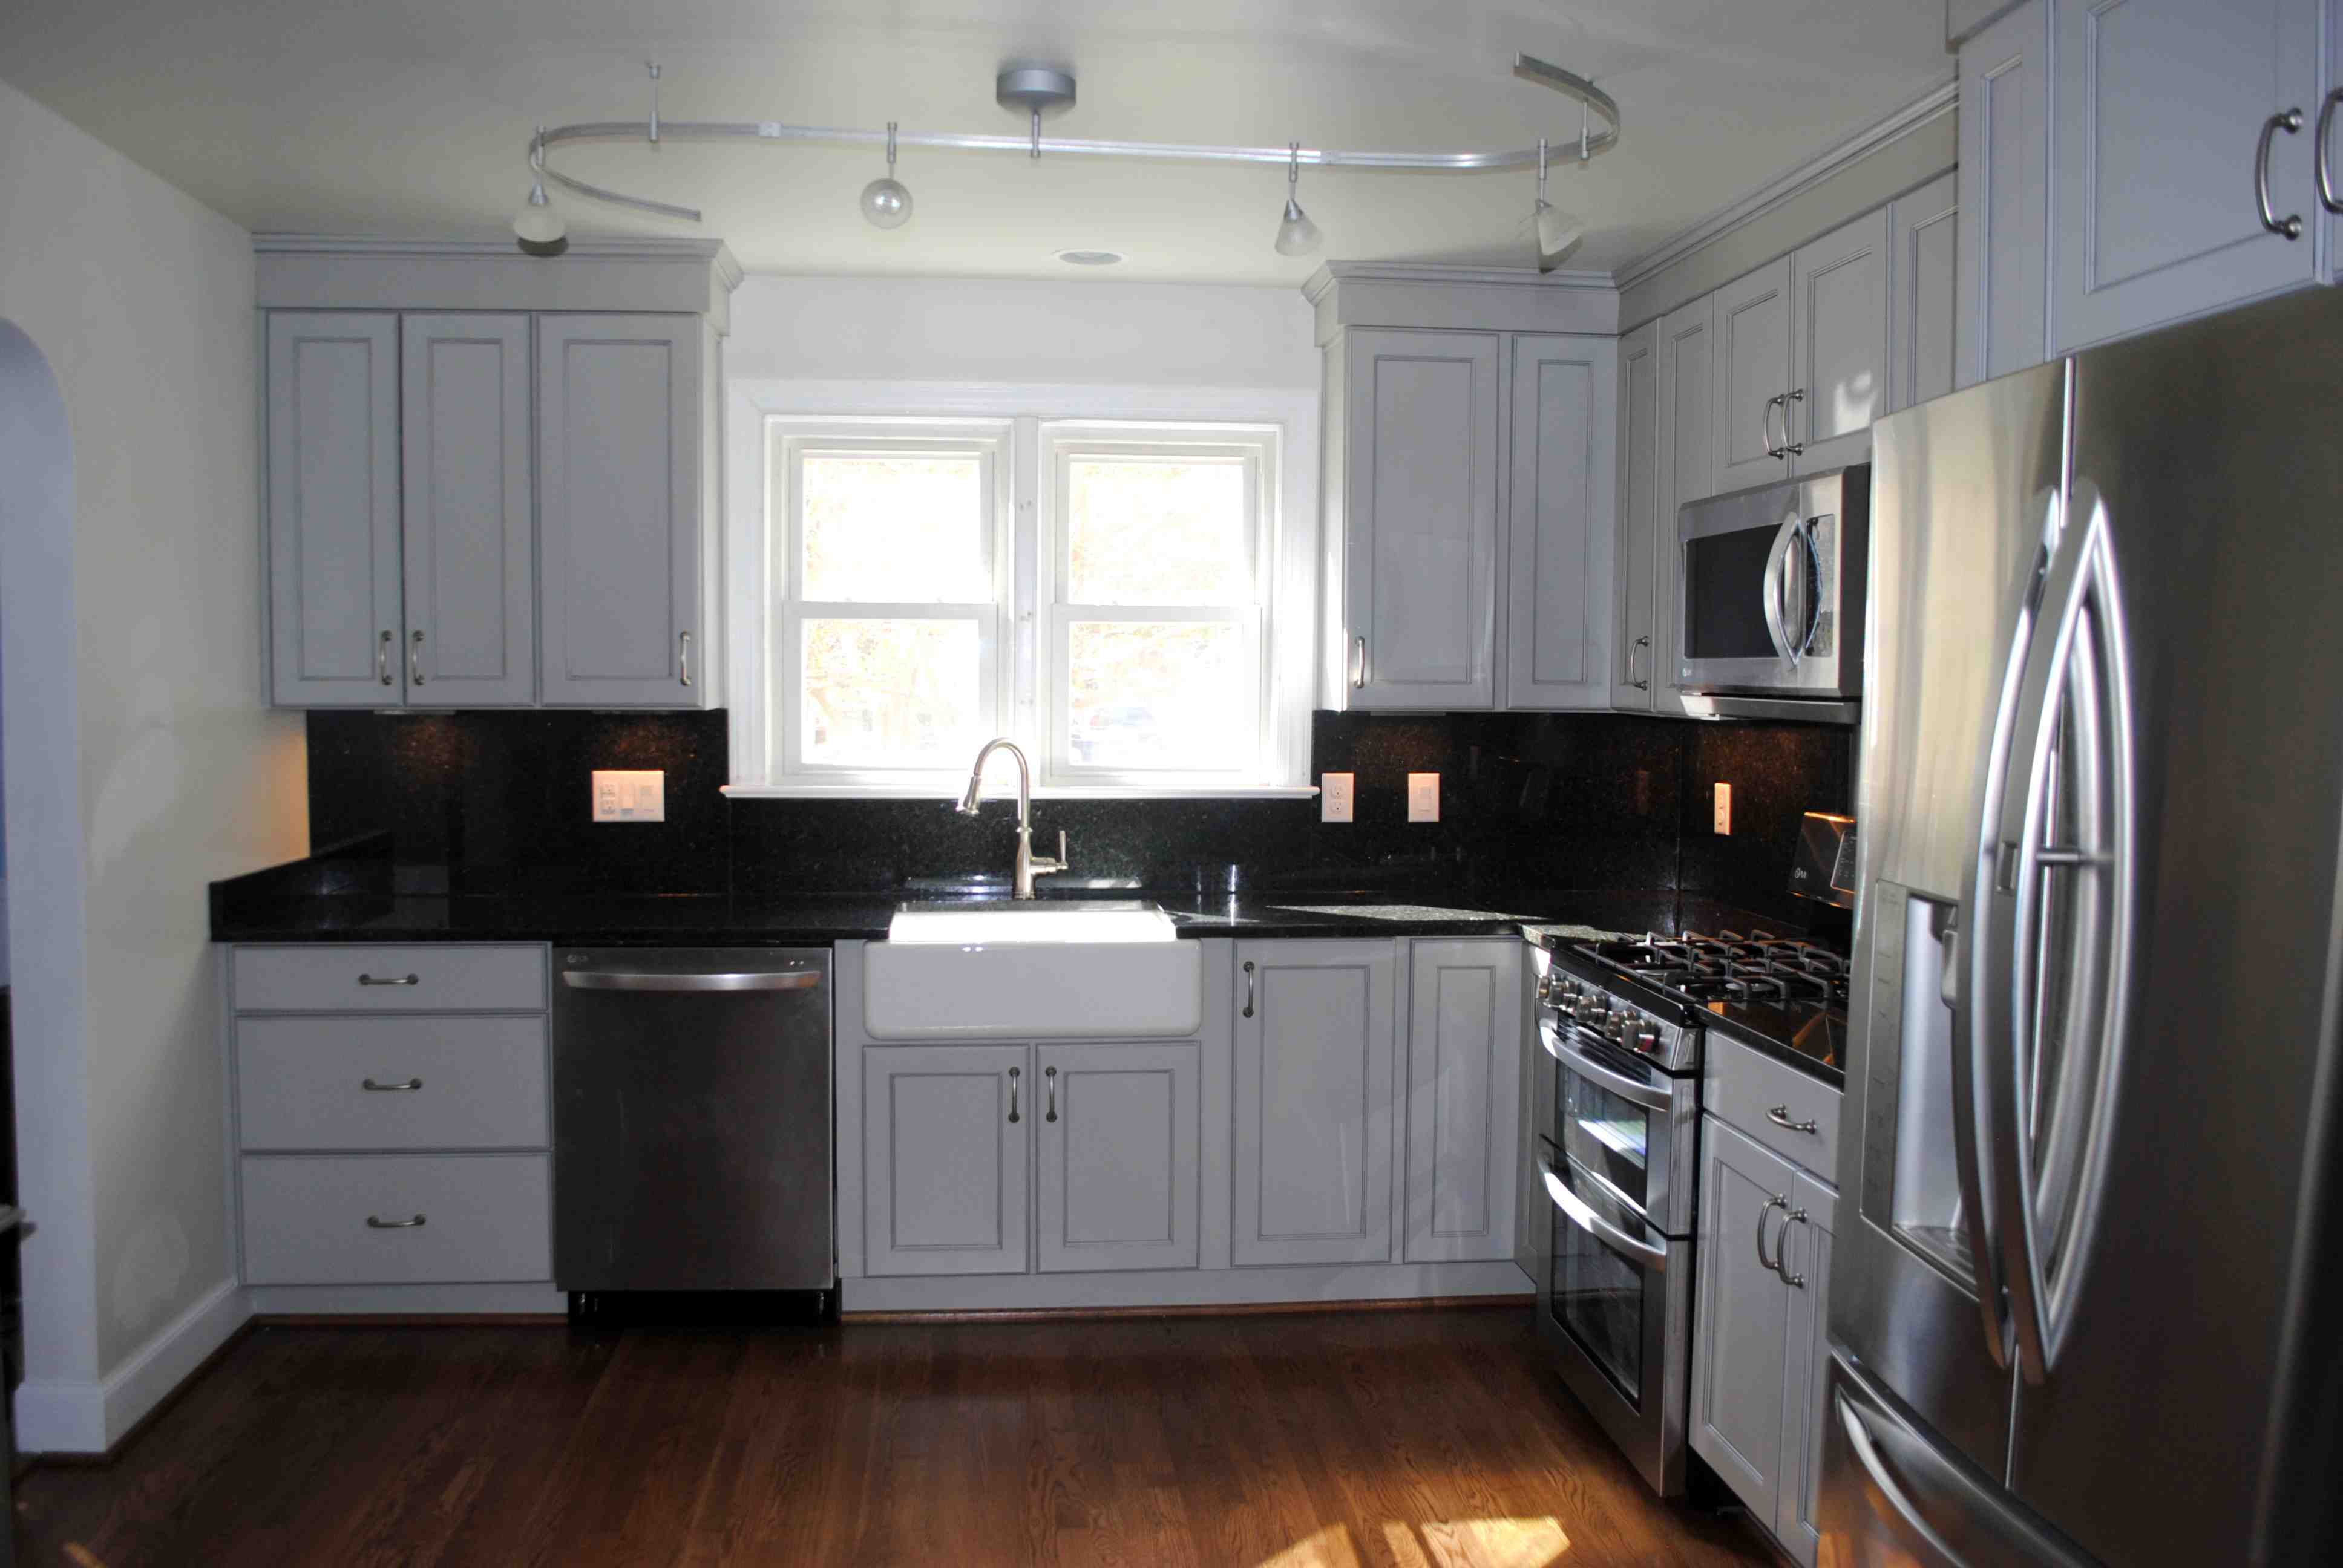 Rustic Kitchen Cabinets - Cozy kitchen area of a small private house